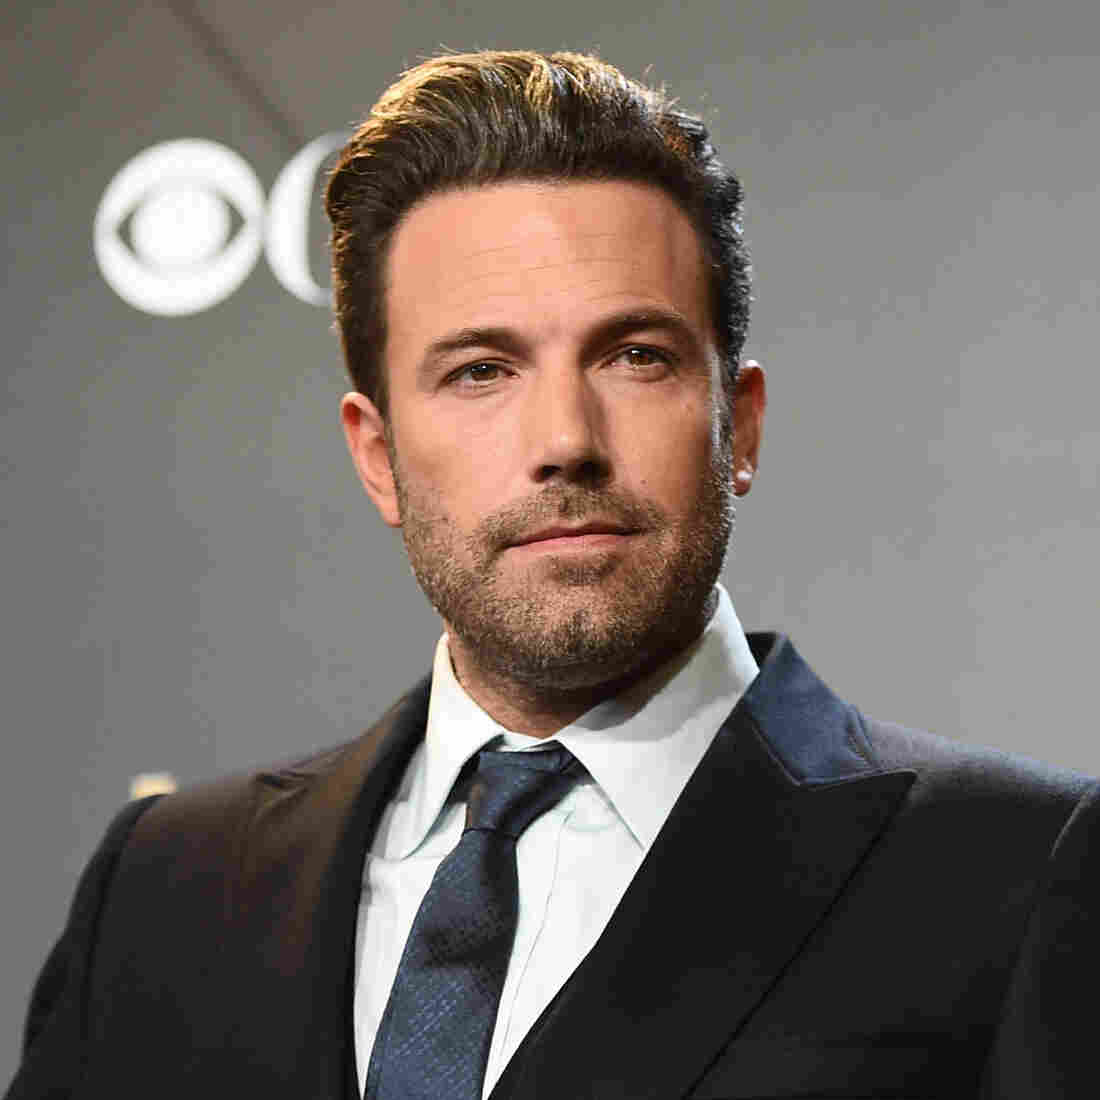 After Ben Affleck Scandal, PBS Postpones 'Finding Your Roots'